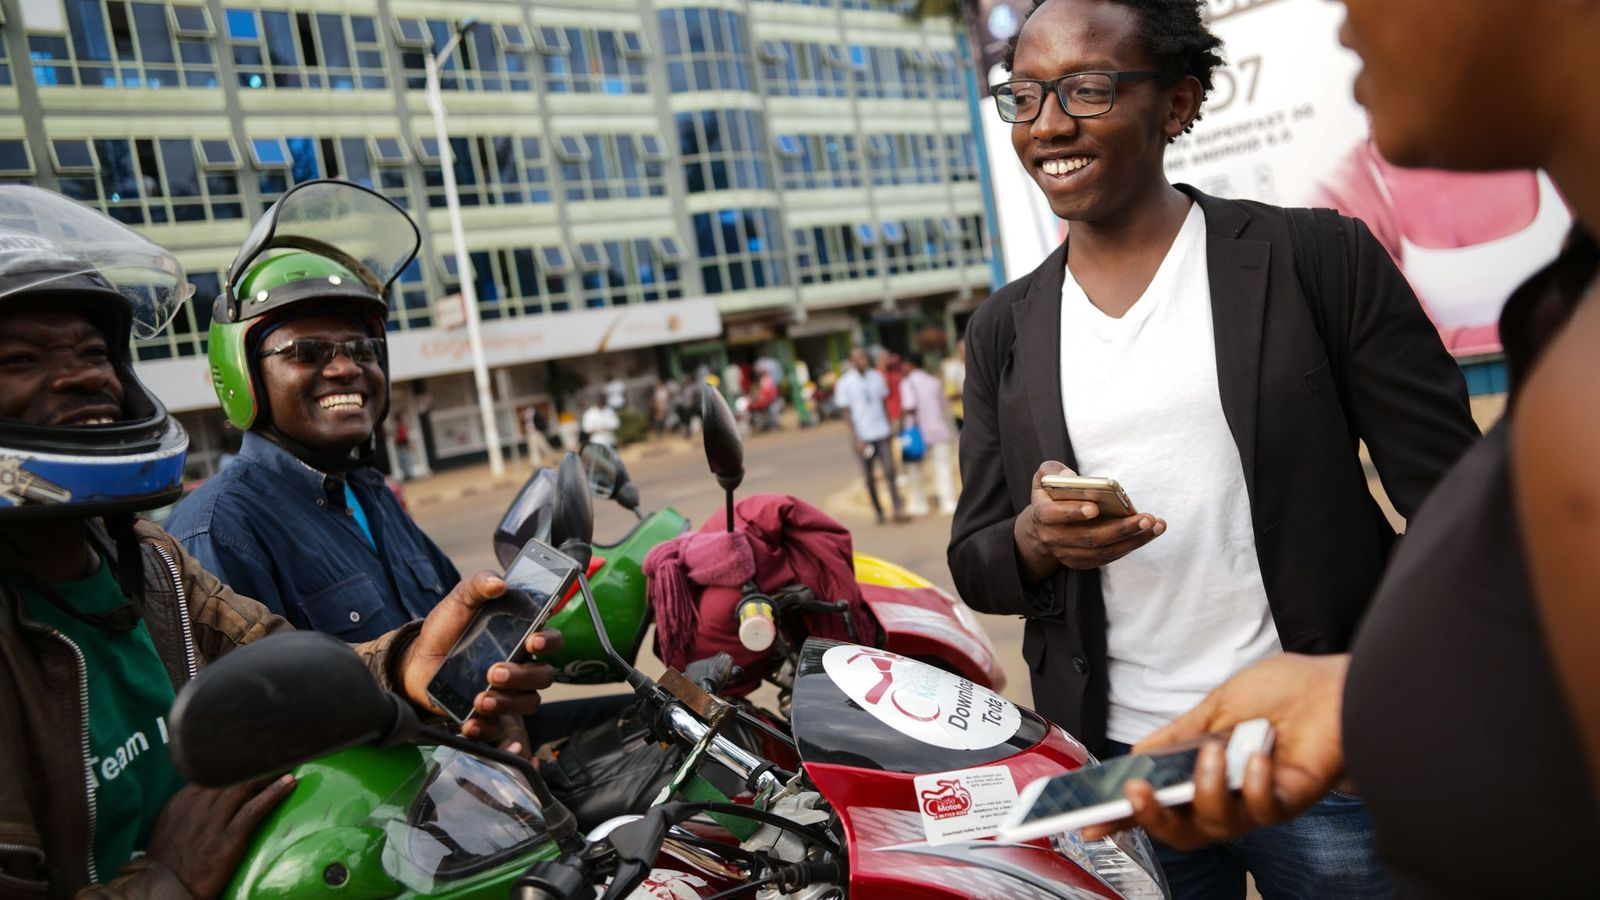 Peter Kariuki, a founder of SafeMotos, interacting with his drivers in downtown Kigali.